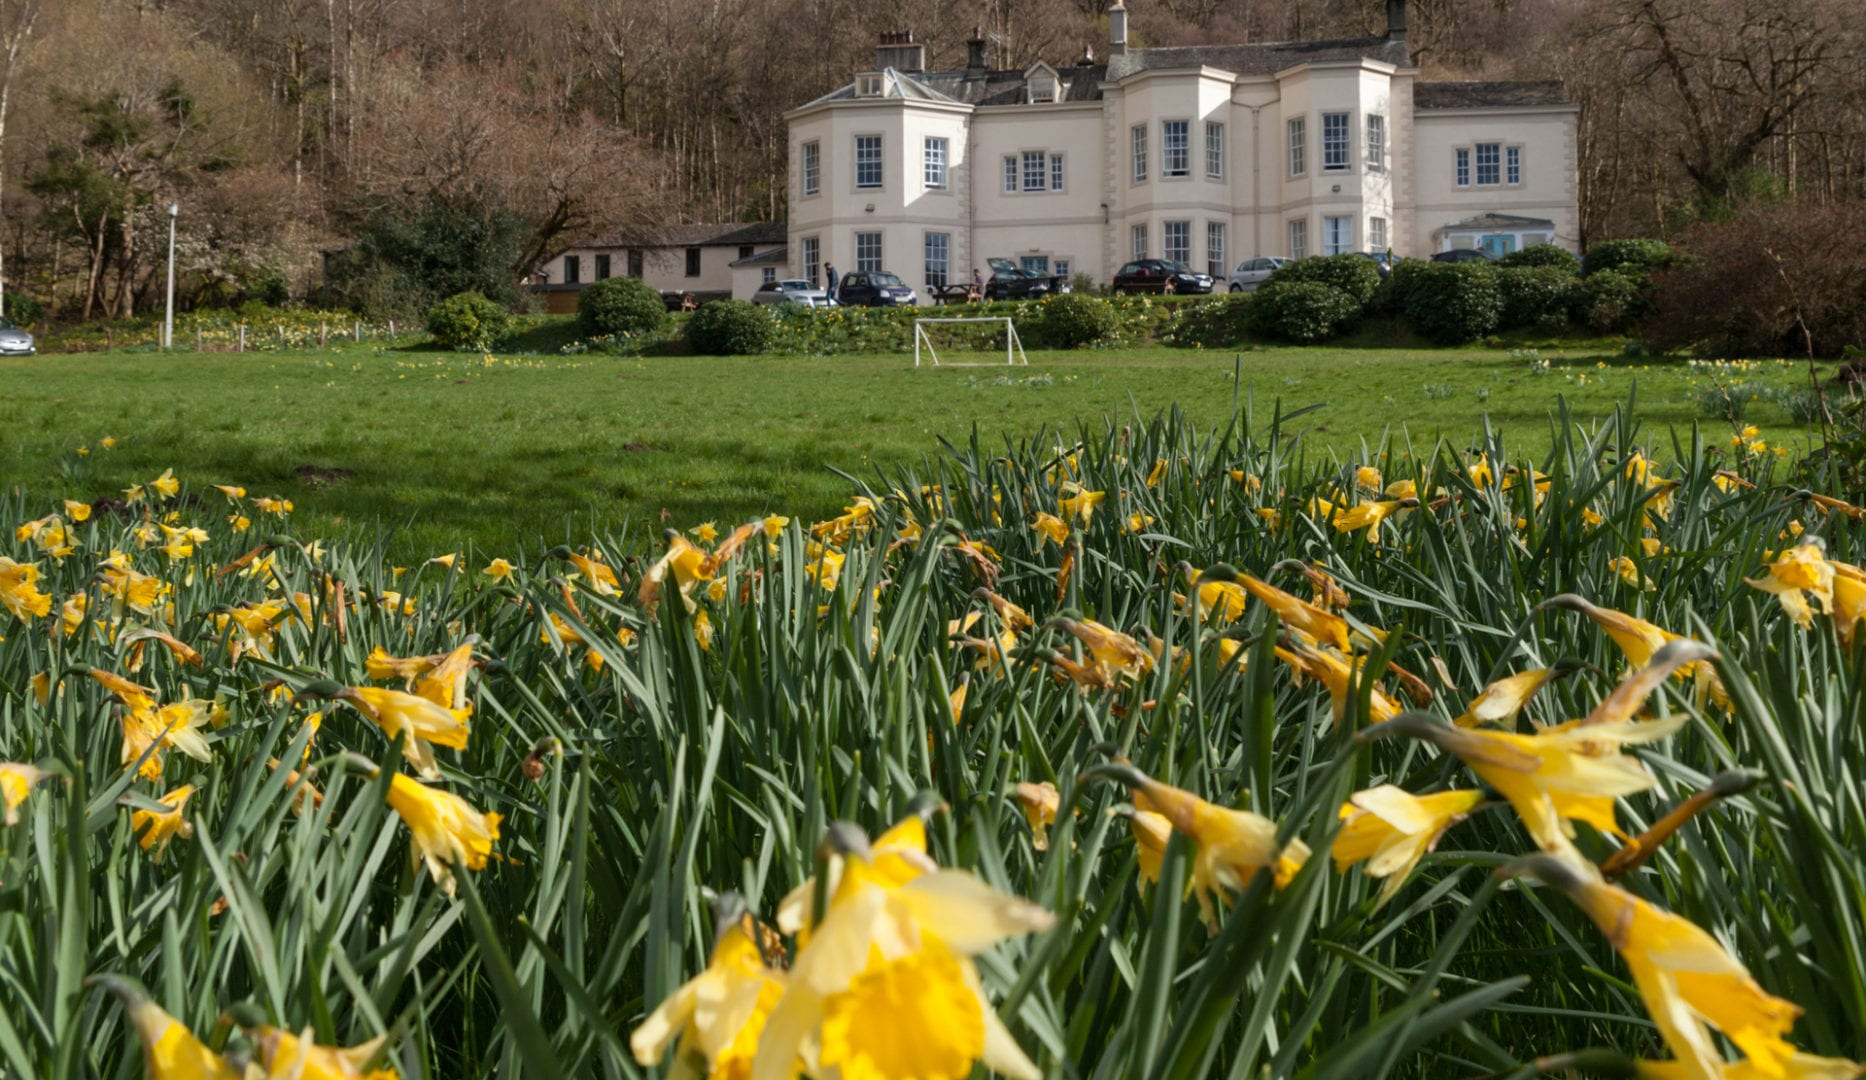 Daffodils at easter at Derwentwater Hostel accommodation